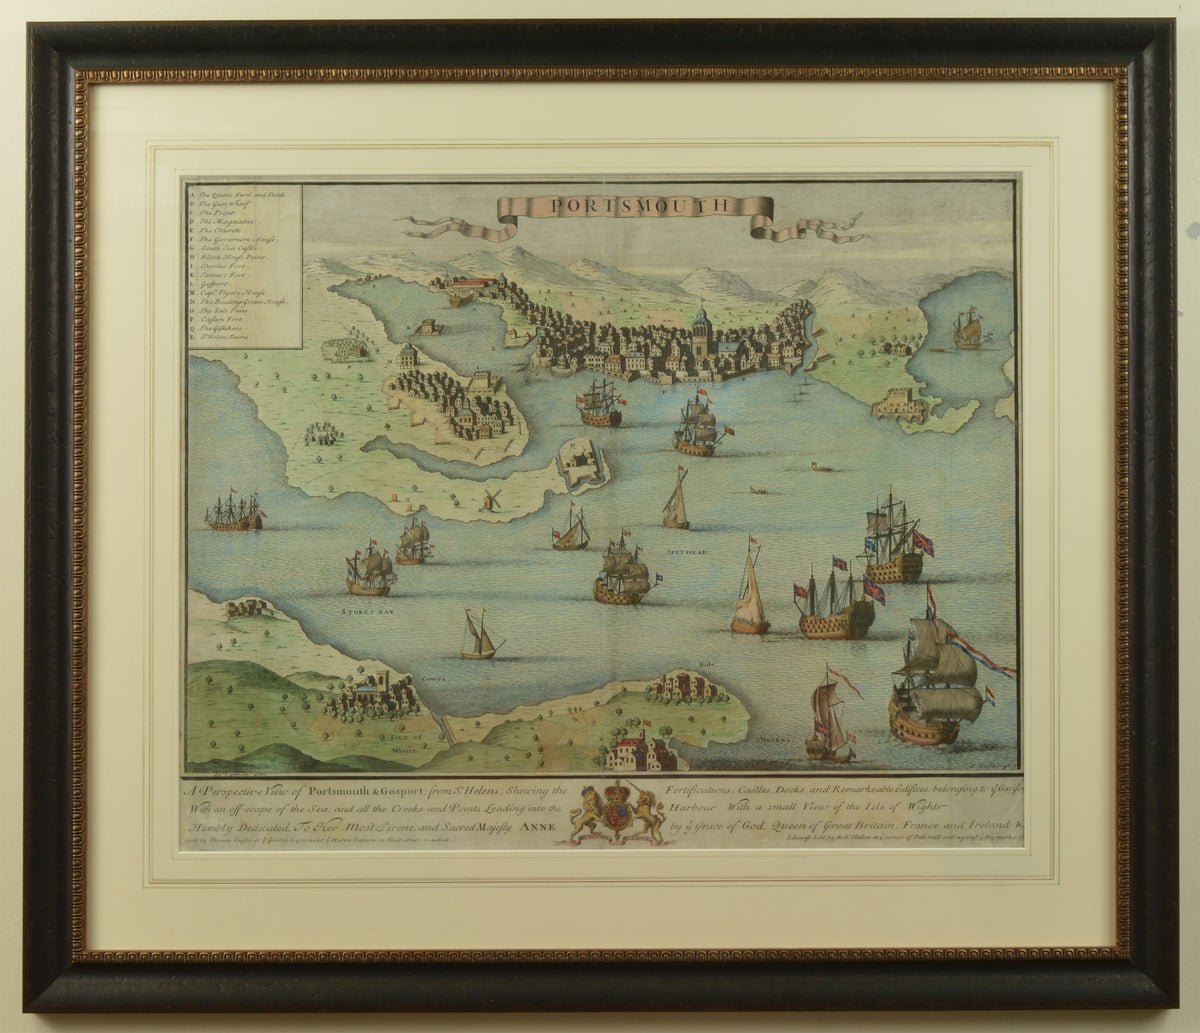 A map of Portsmouth and Gosport dating to 1708